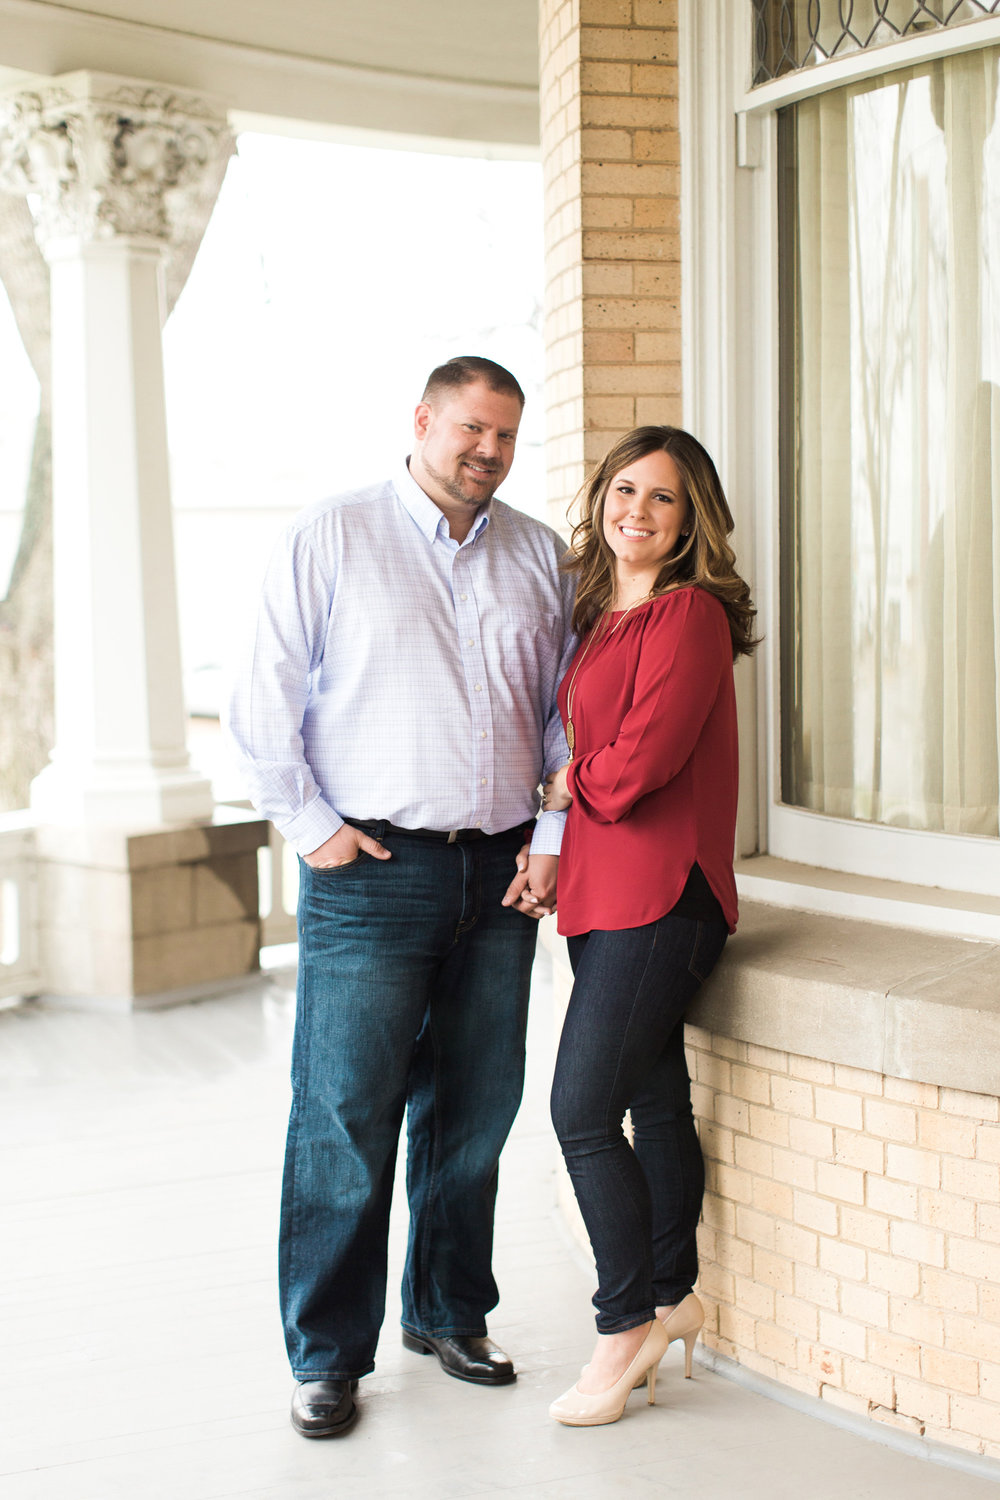 b73bf-waco_engagement_session-6.jpg